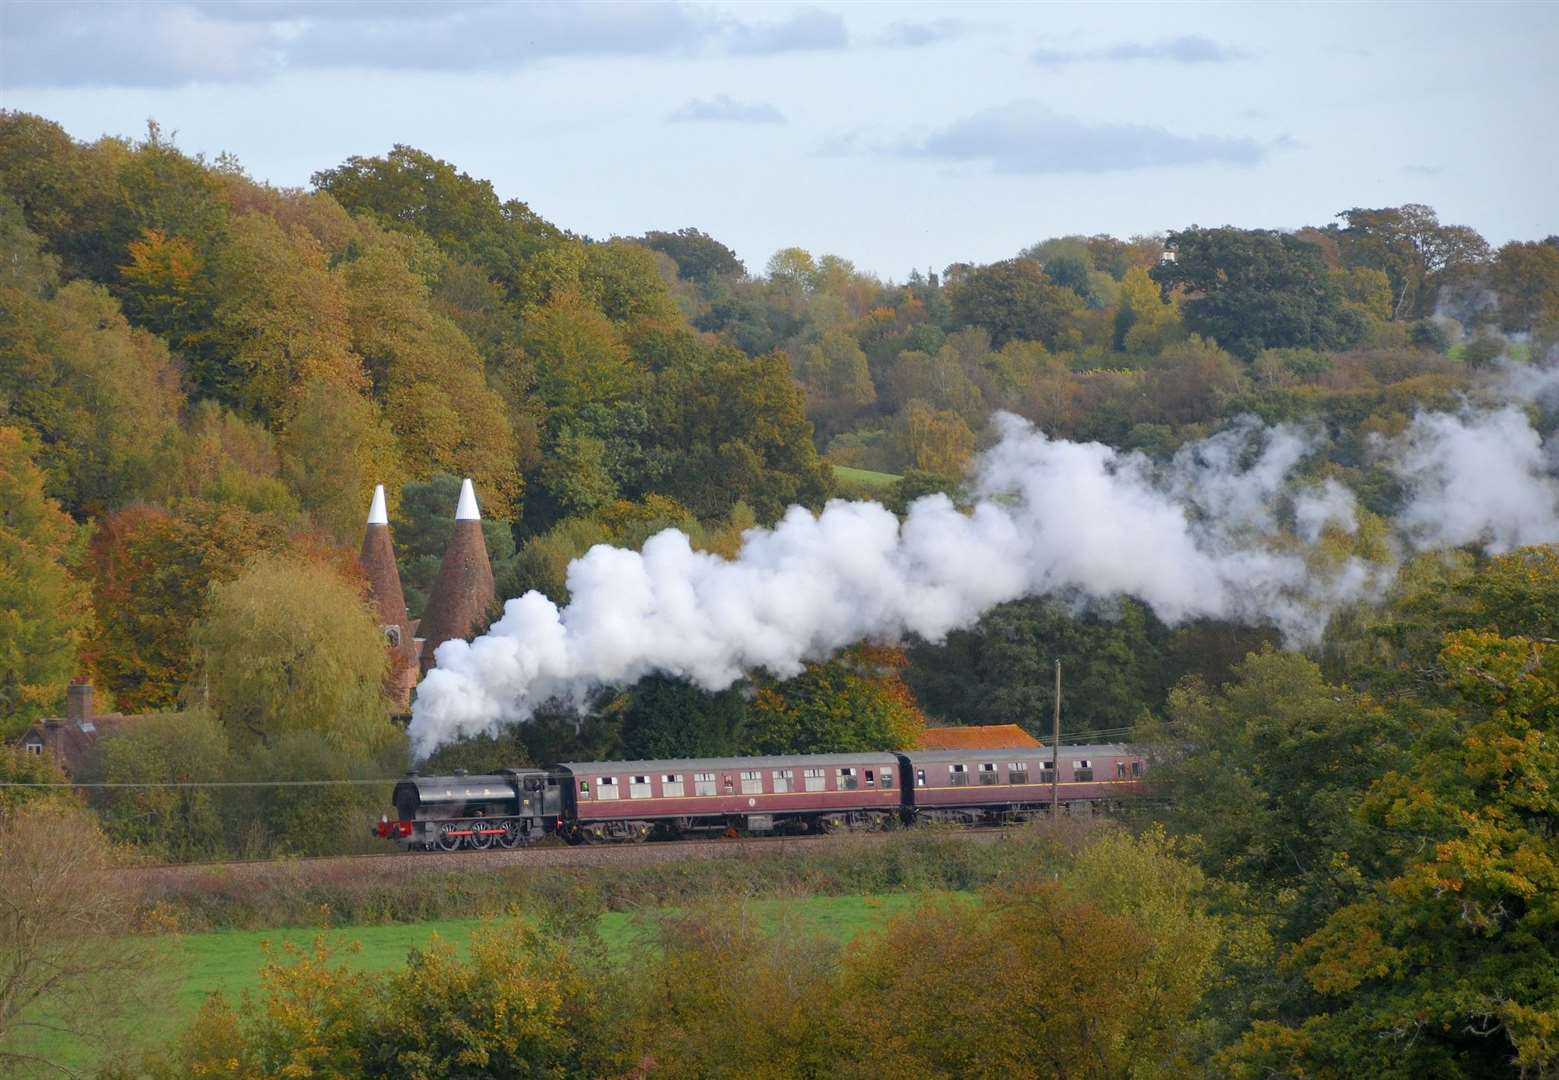 The train rides will take you through the Kent countryside